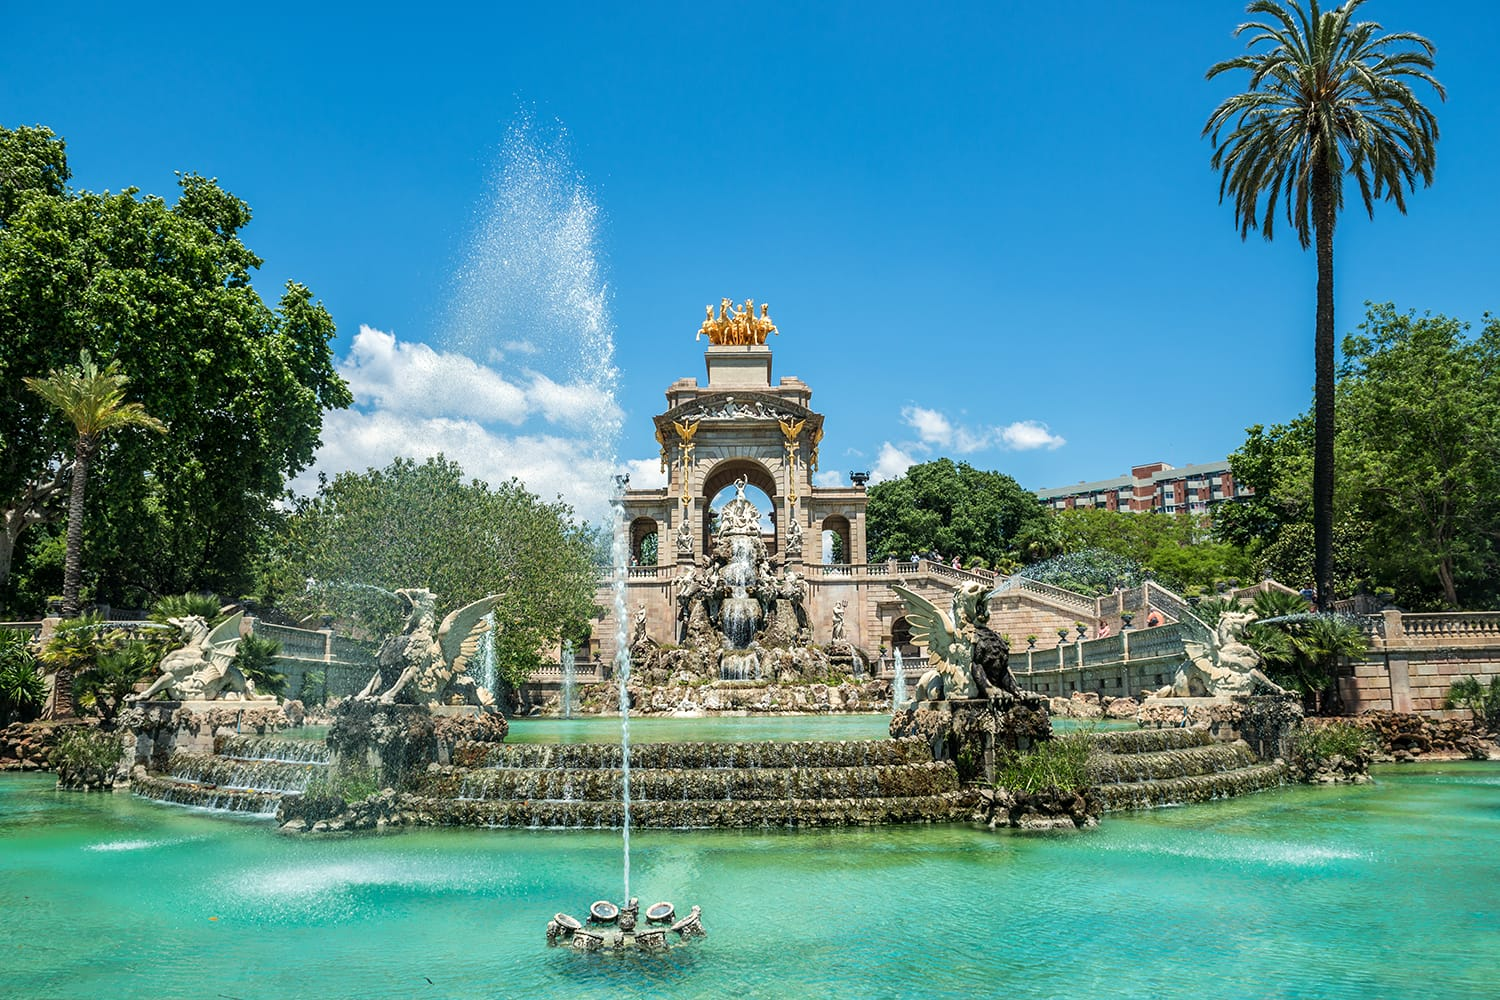 Fountain in Parc de la Ciutadella called Cascada in Barcelona, Spain